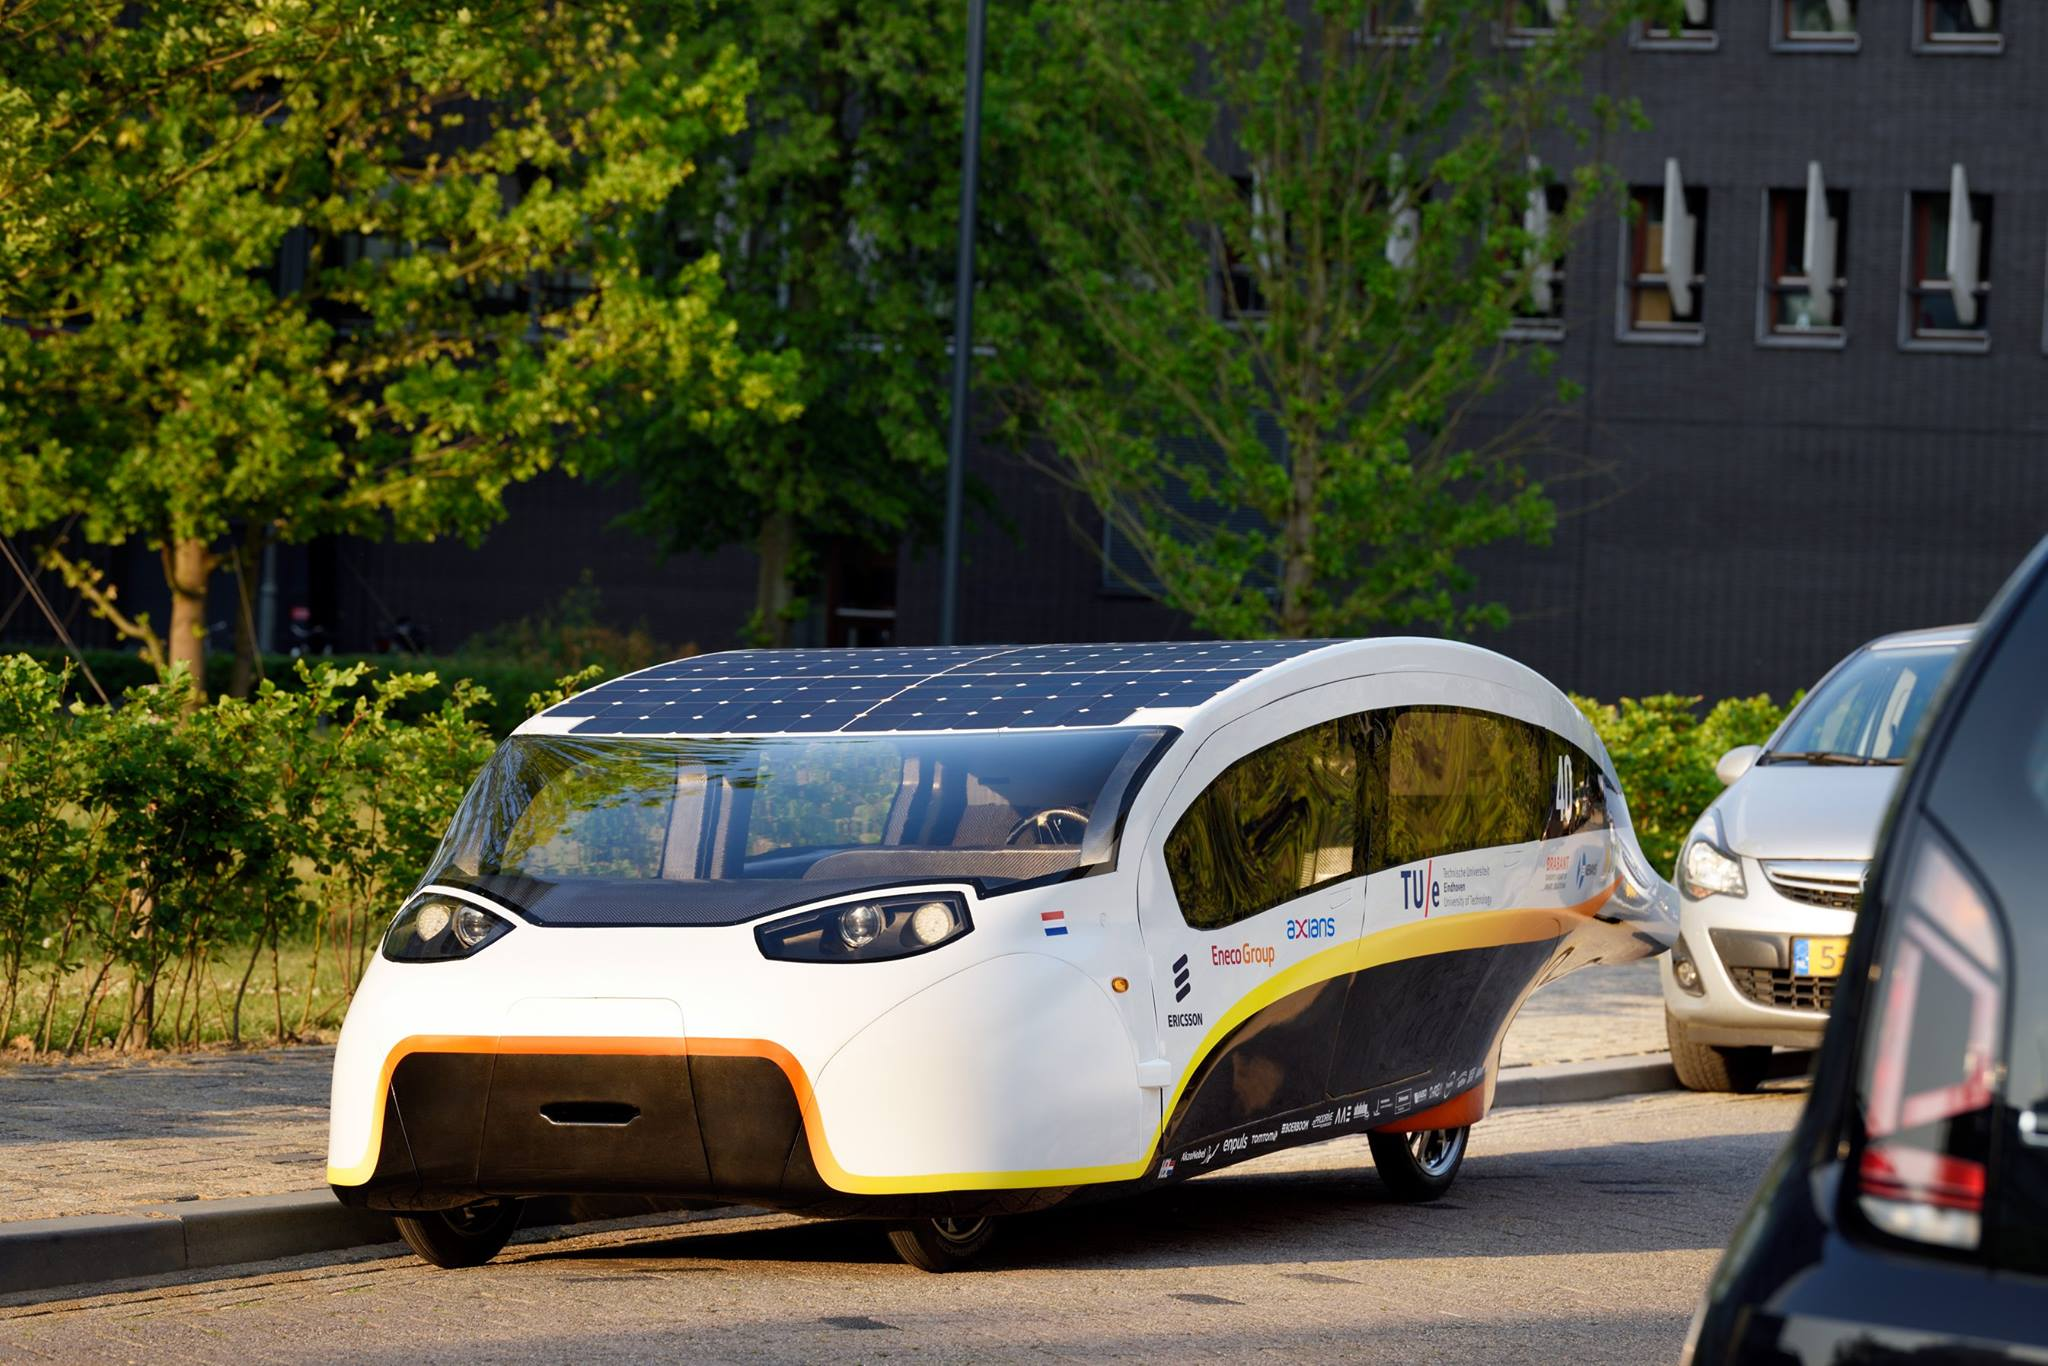 The Solar Powered Family Car Stella Vie A Closer Look At Wiring In Cells Might Stop Reflecting Light One Up What Kind Of Have Been Used How Much Power Can They Deliver And Does Tu E Contribute To Development Affordable Energy